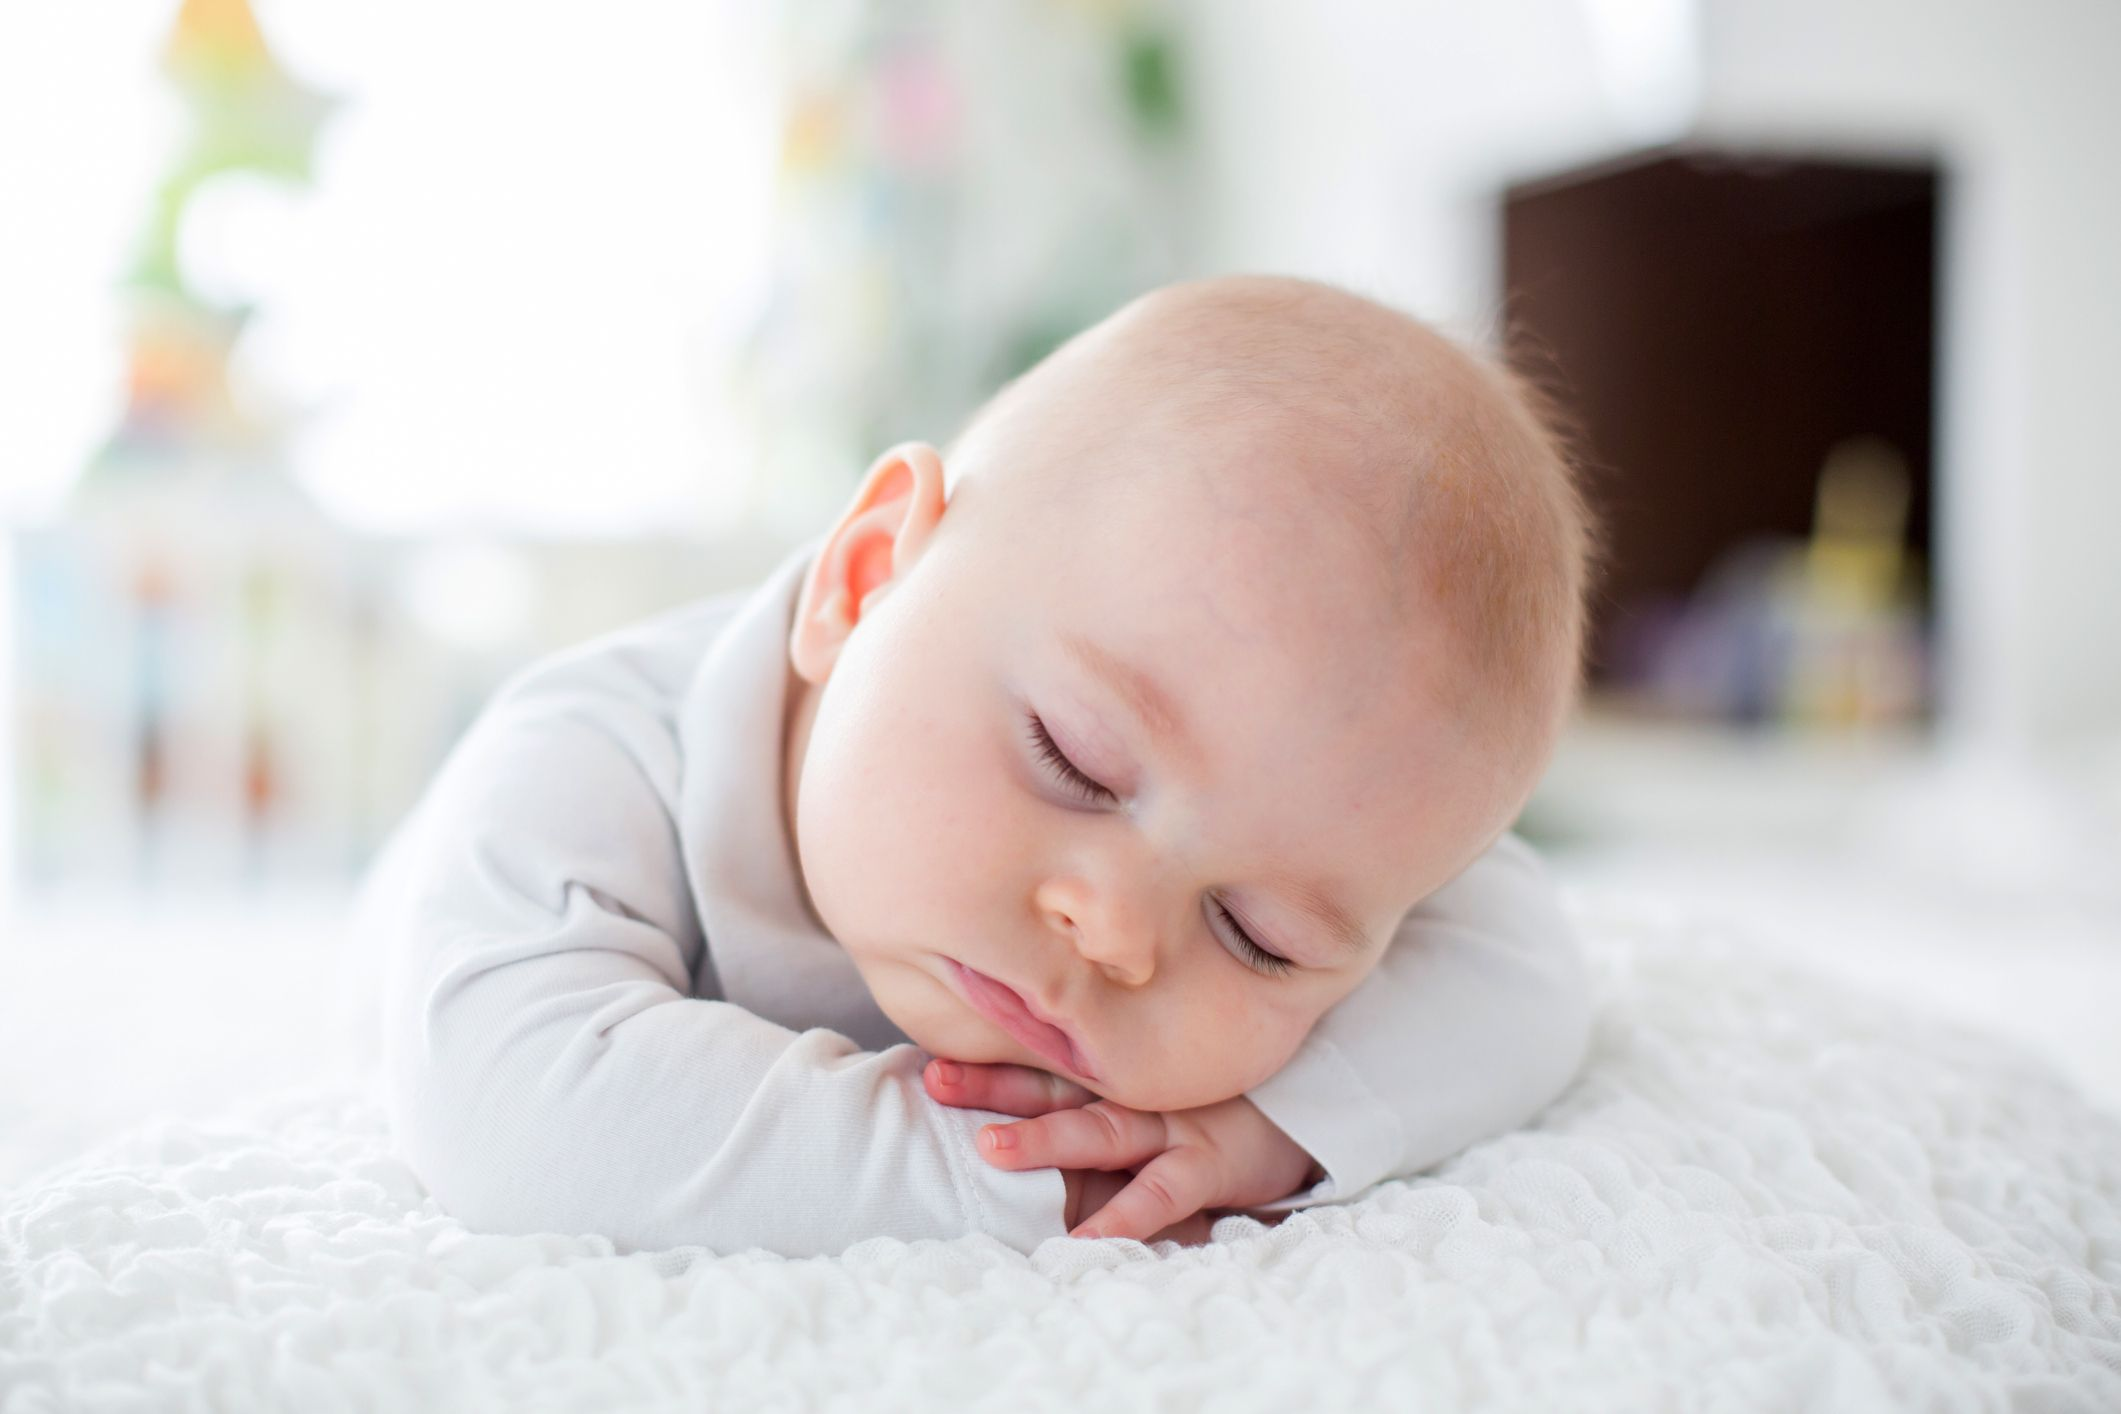 20 Baby Boy Names With Meaning - Meaningful Baby Names for Boys